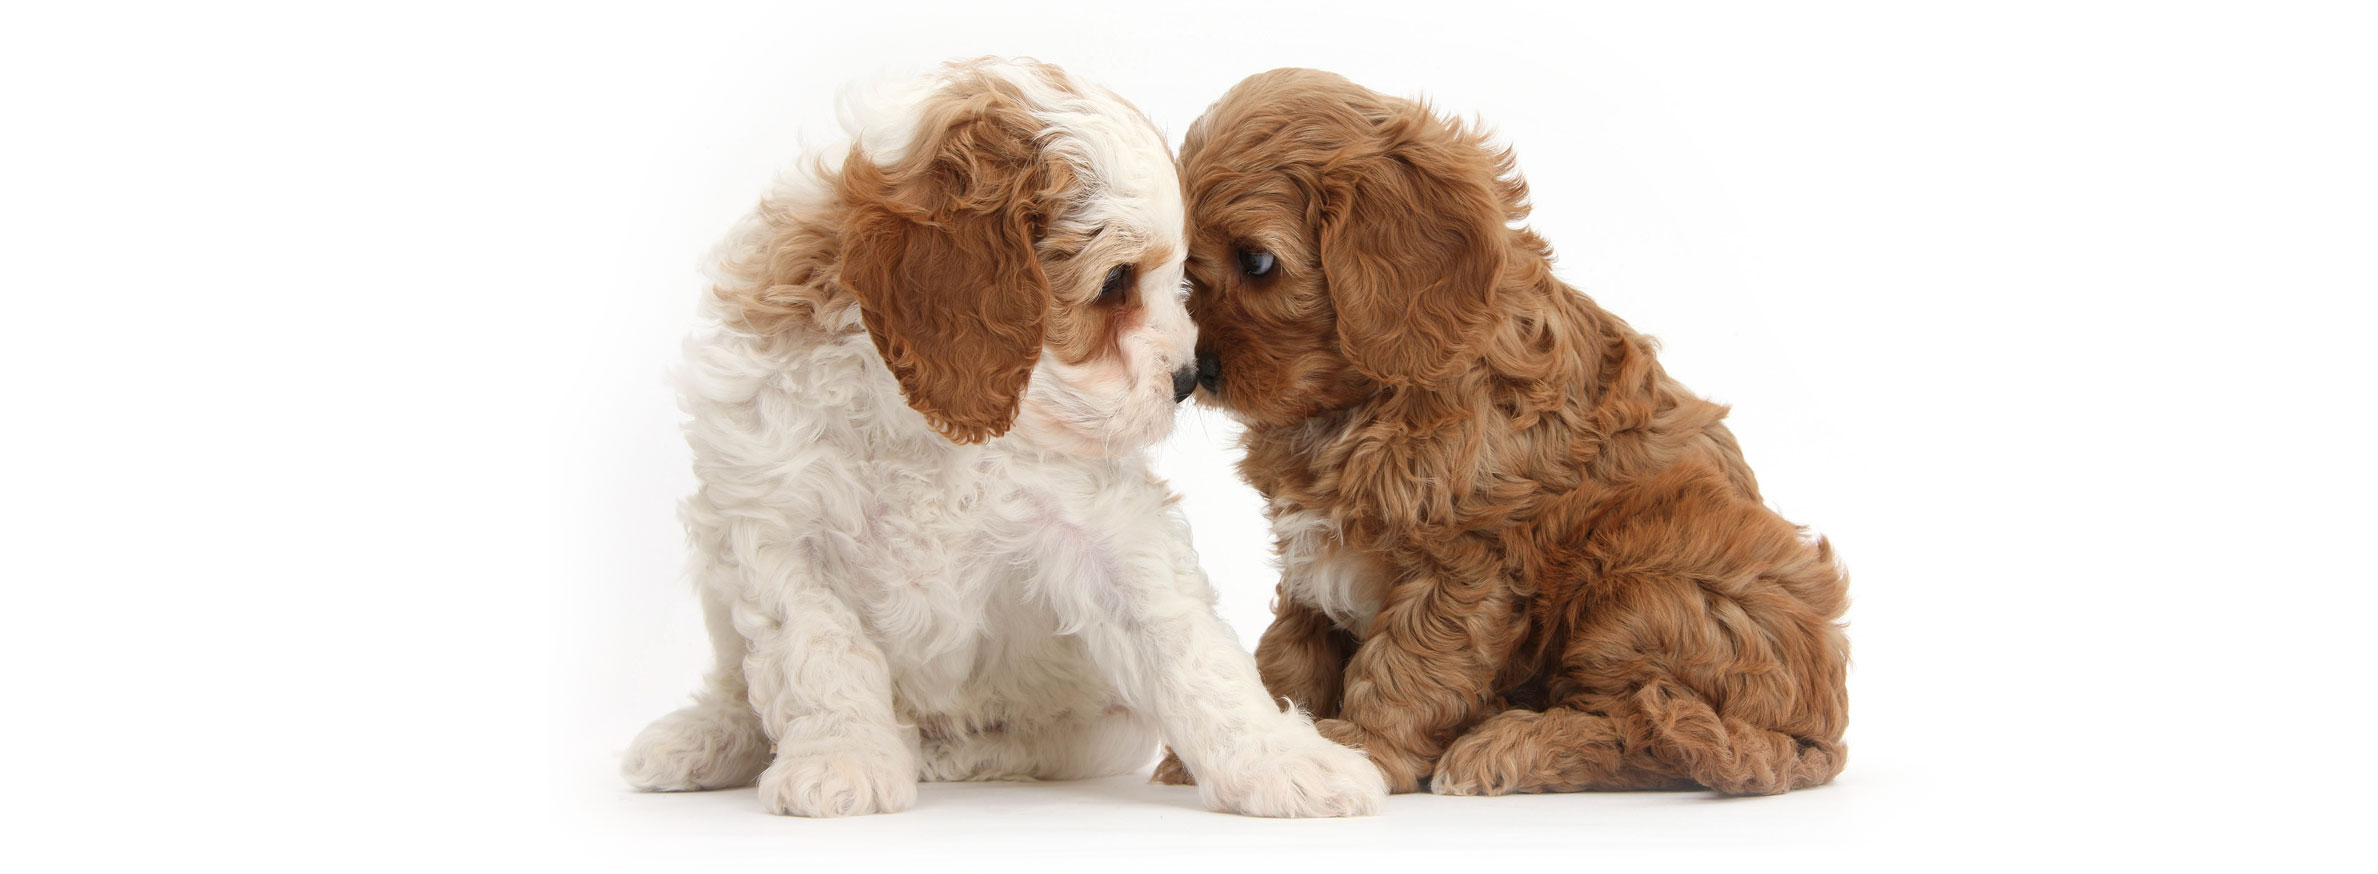 Connecticut labradoodle puppies